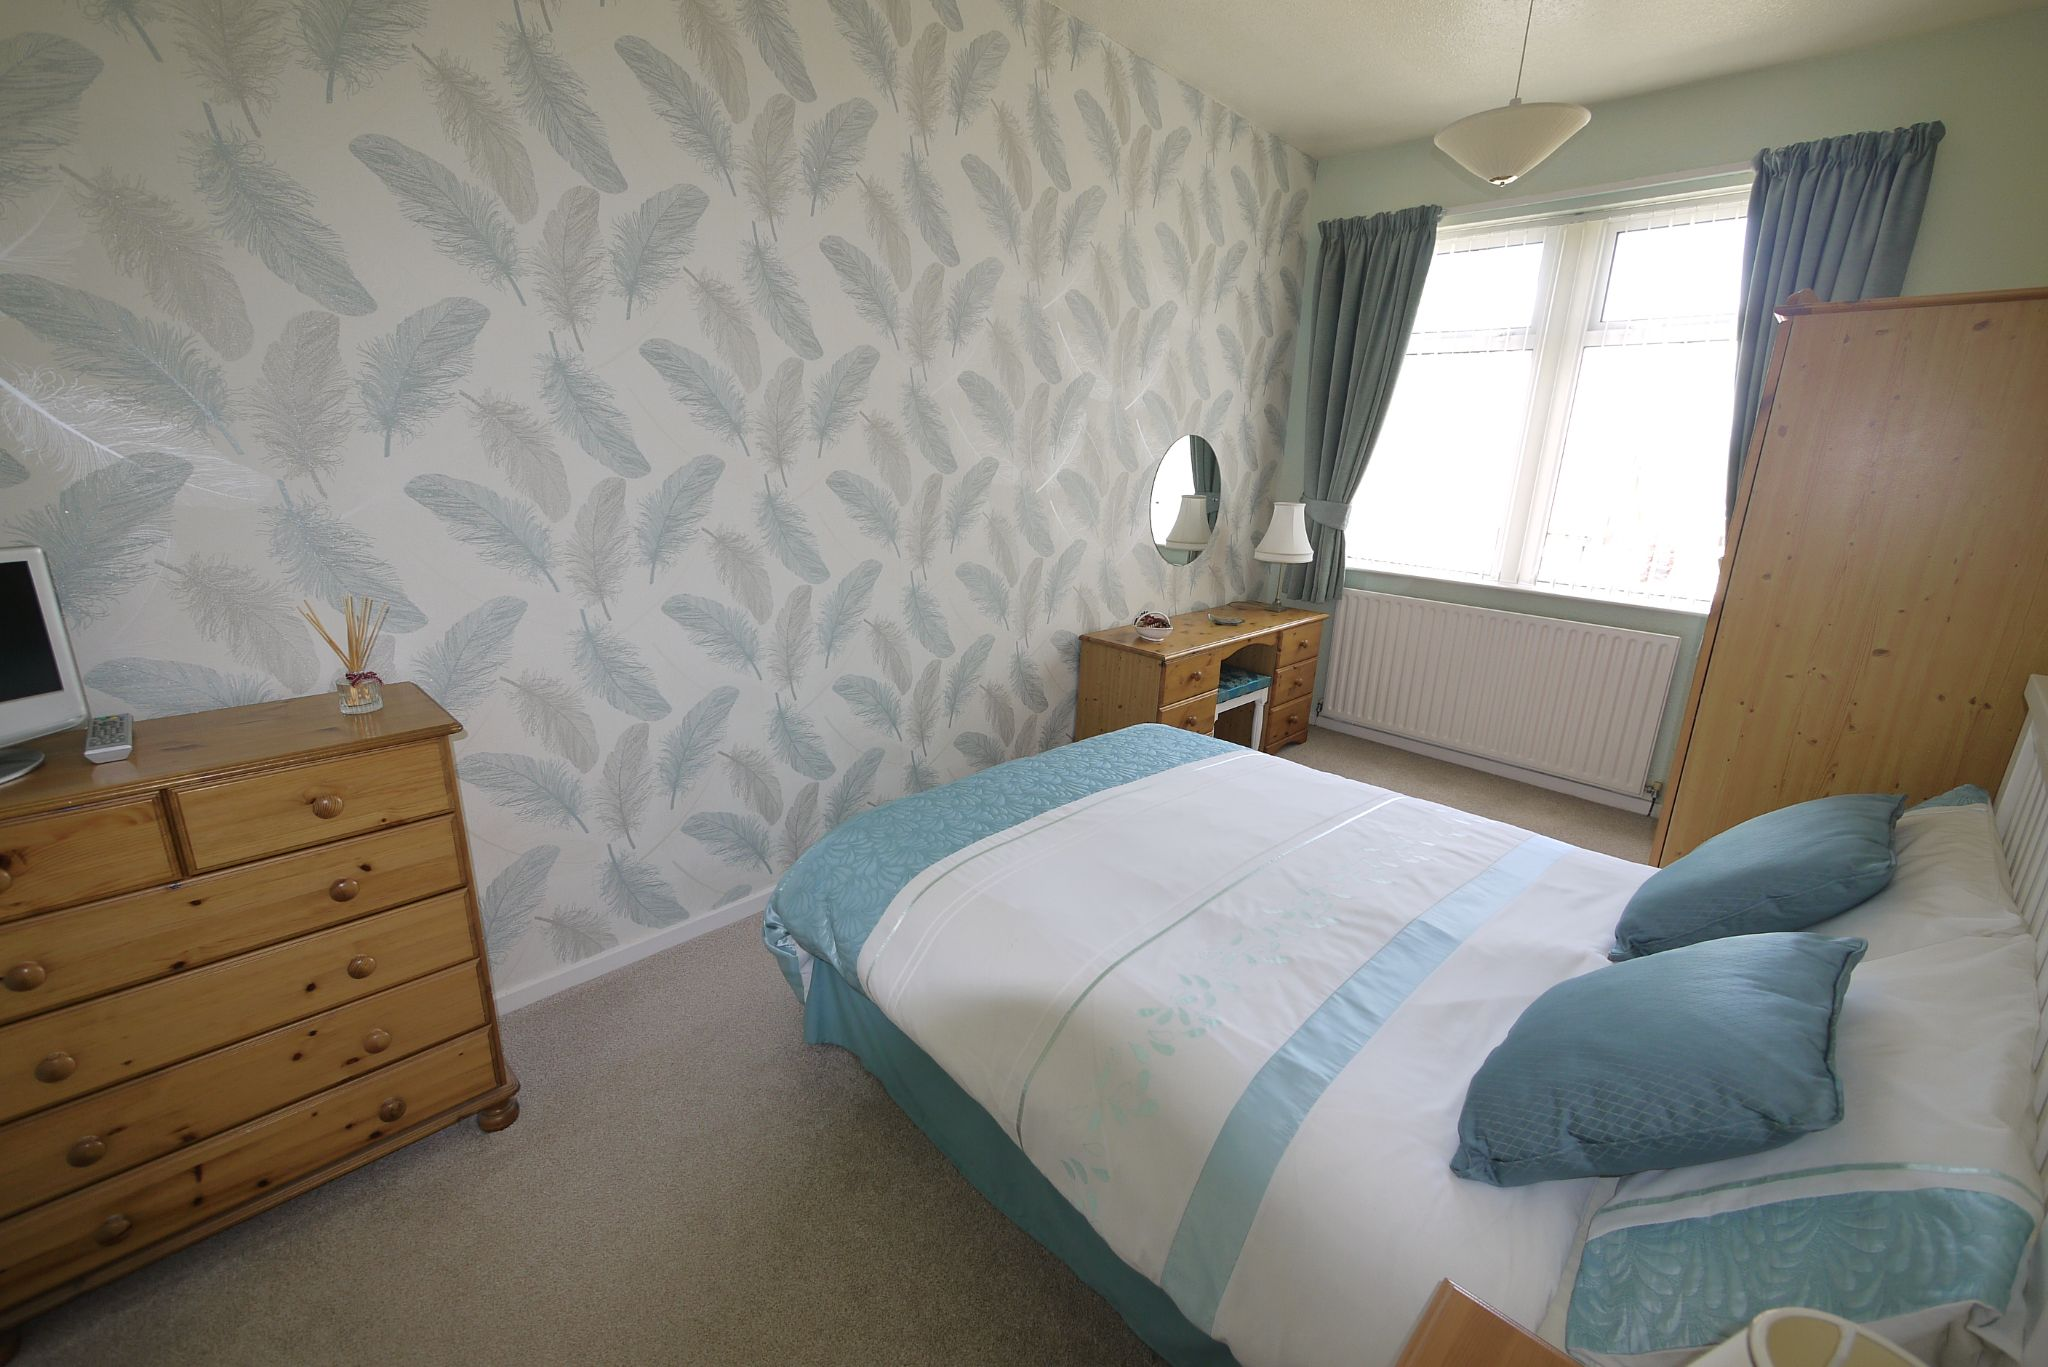 4 bedroom semi-detached house SSTC in Brighouse - Photograph 14.